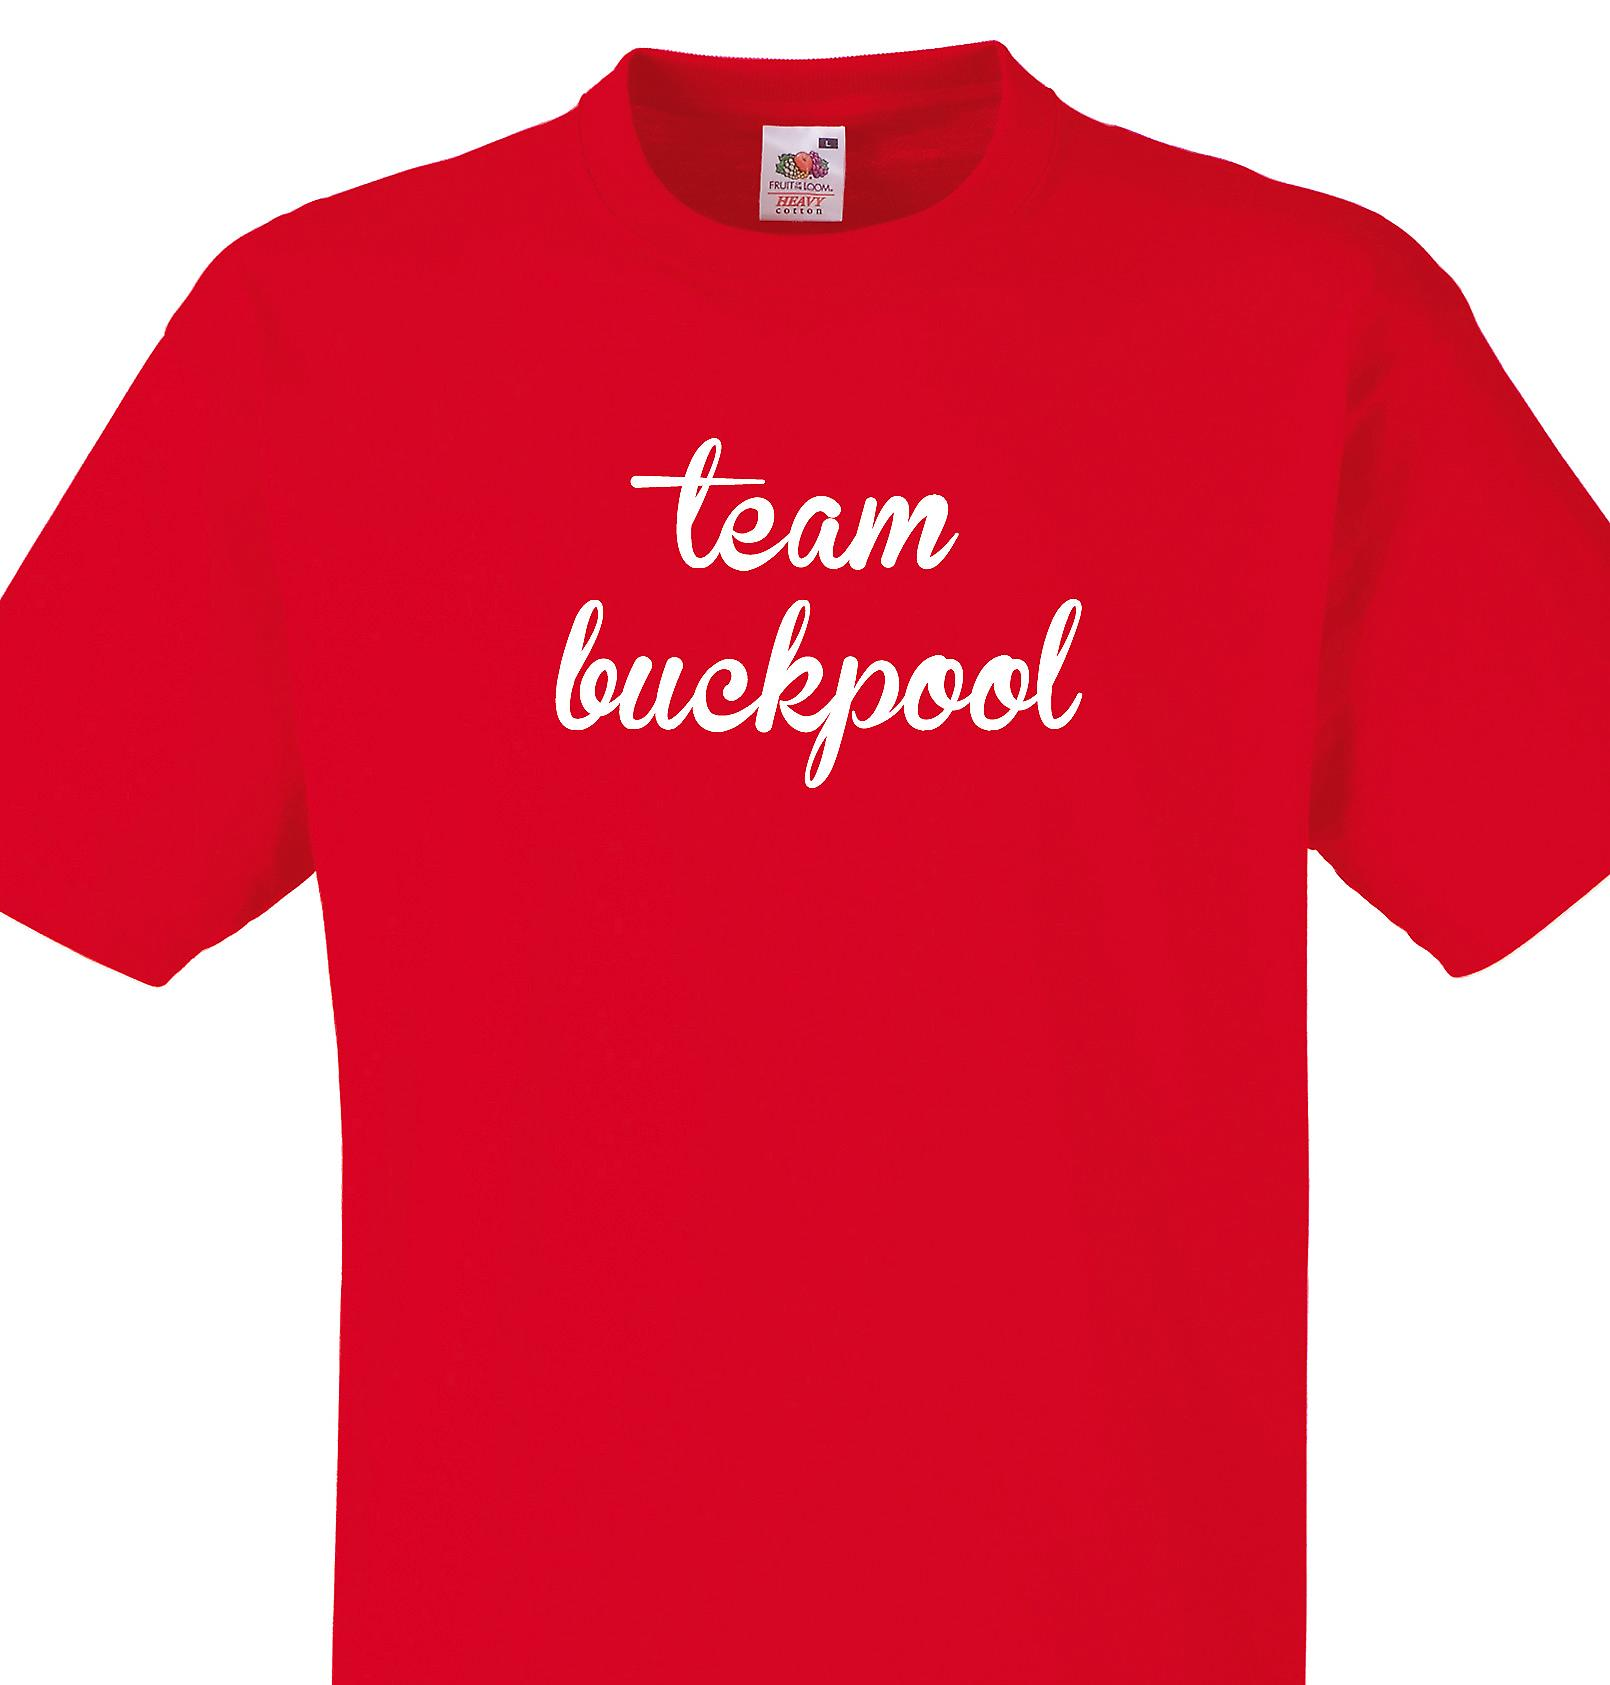 Team Buckpool Red T shirt